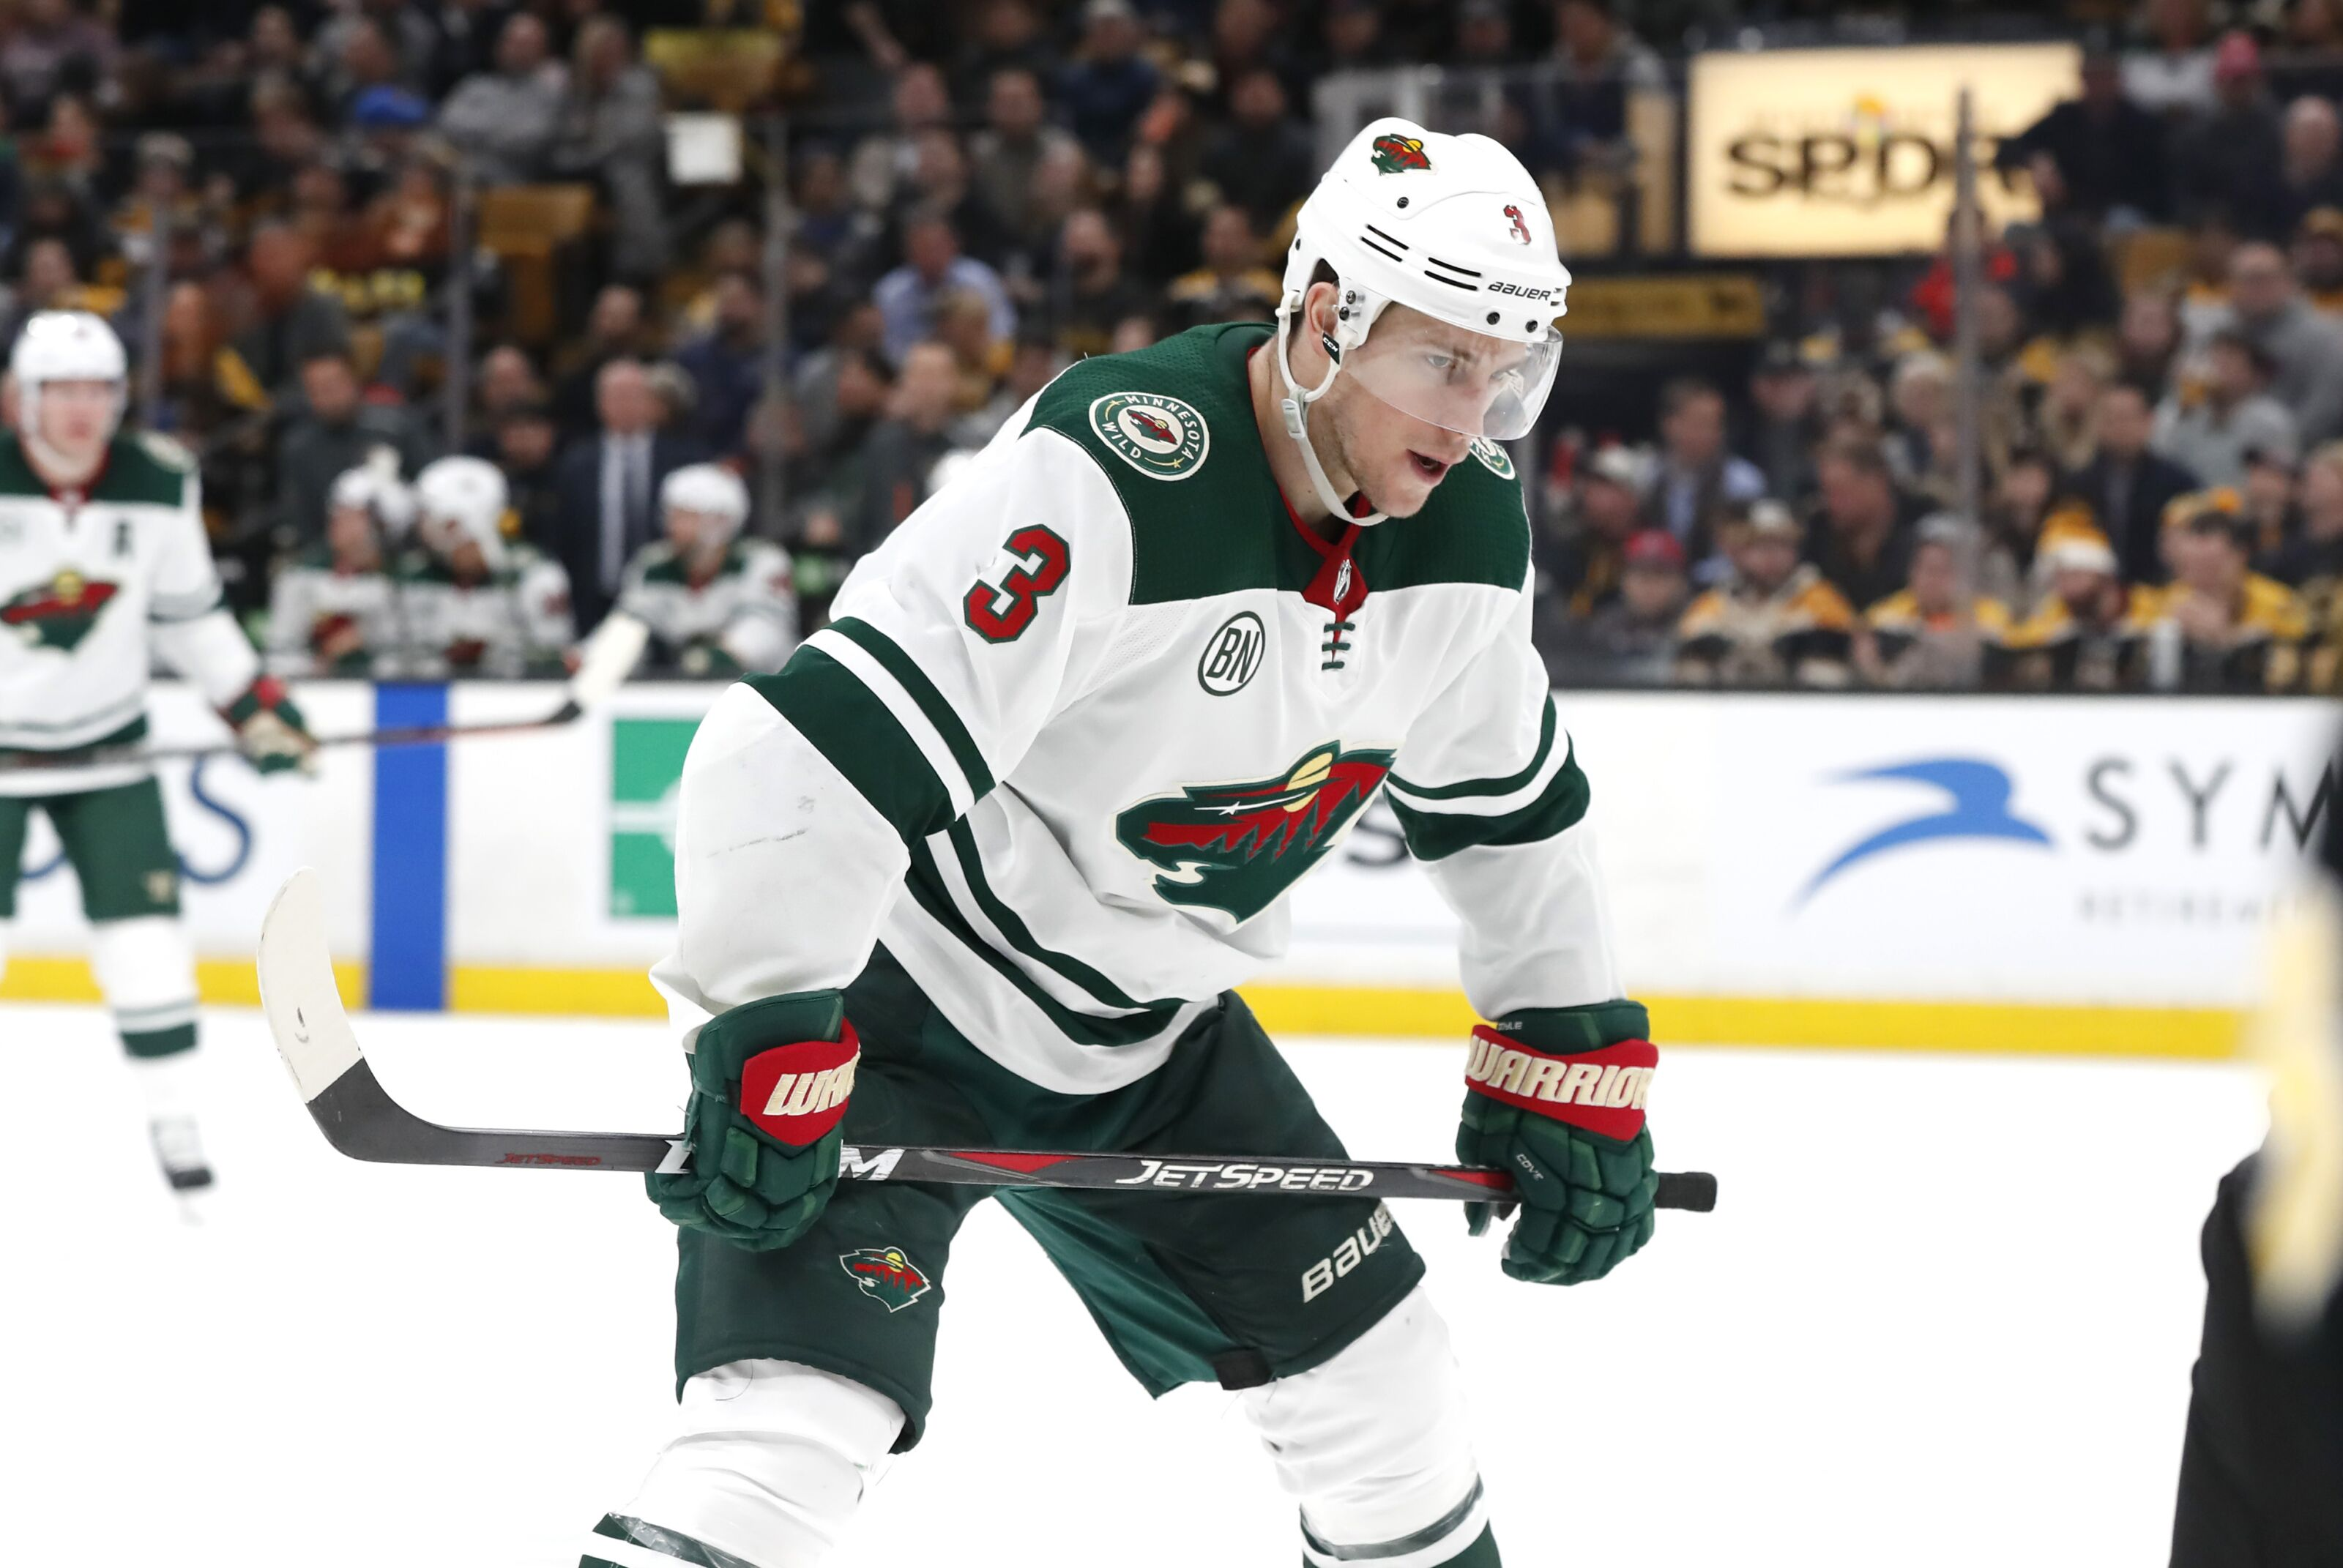 df69f07abe7 Minnesota Wild  Could the Boston Bruins be in for Charlie Coyle